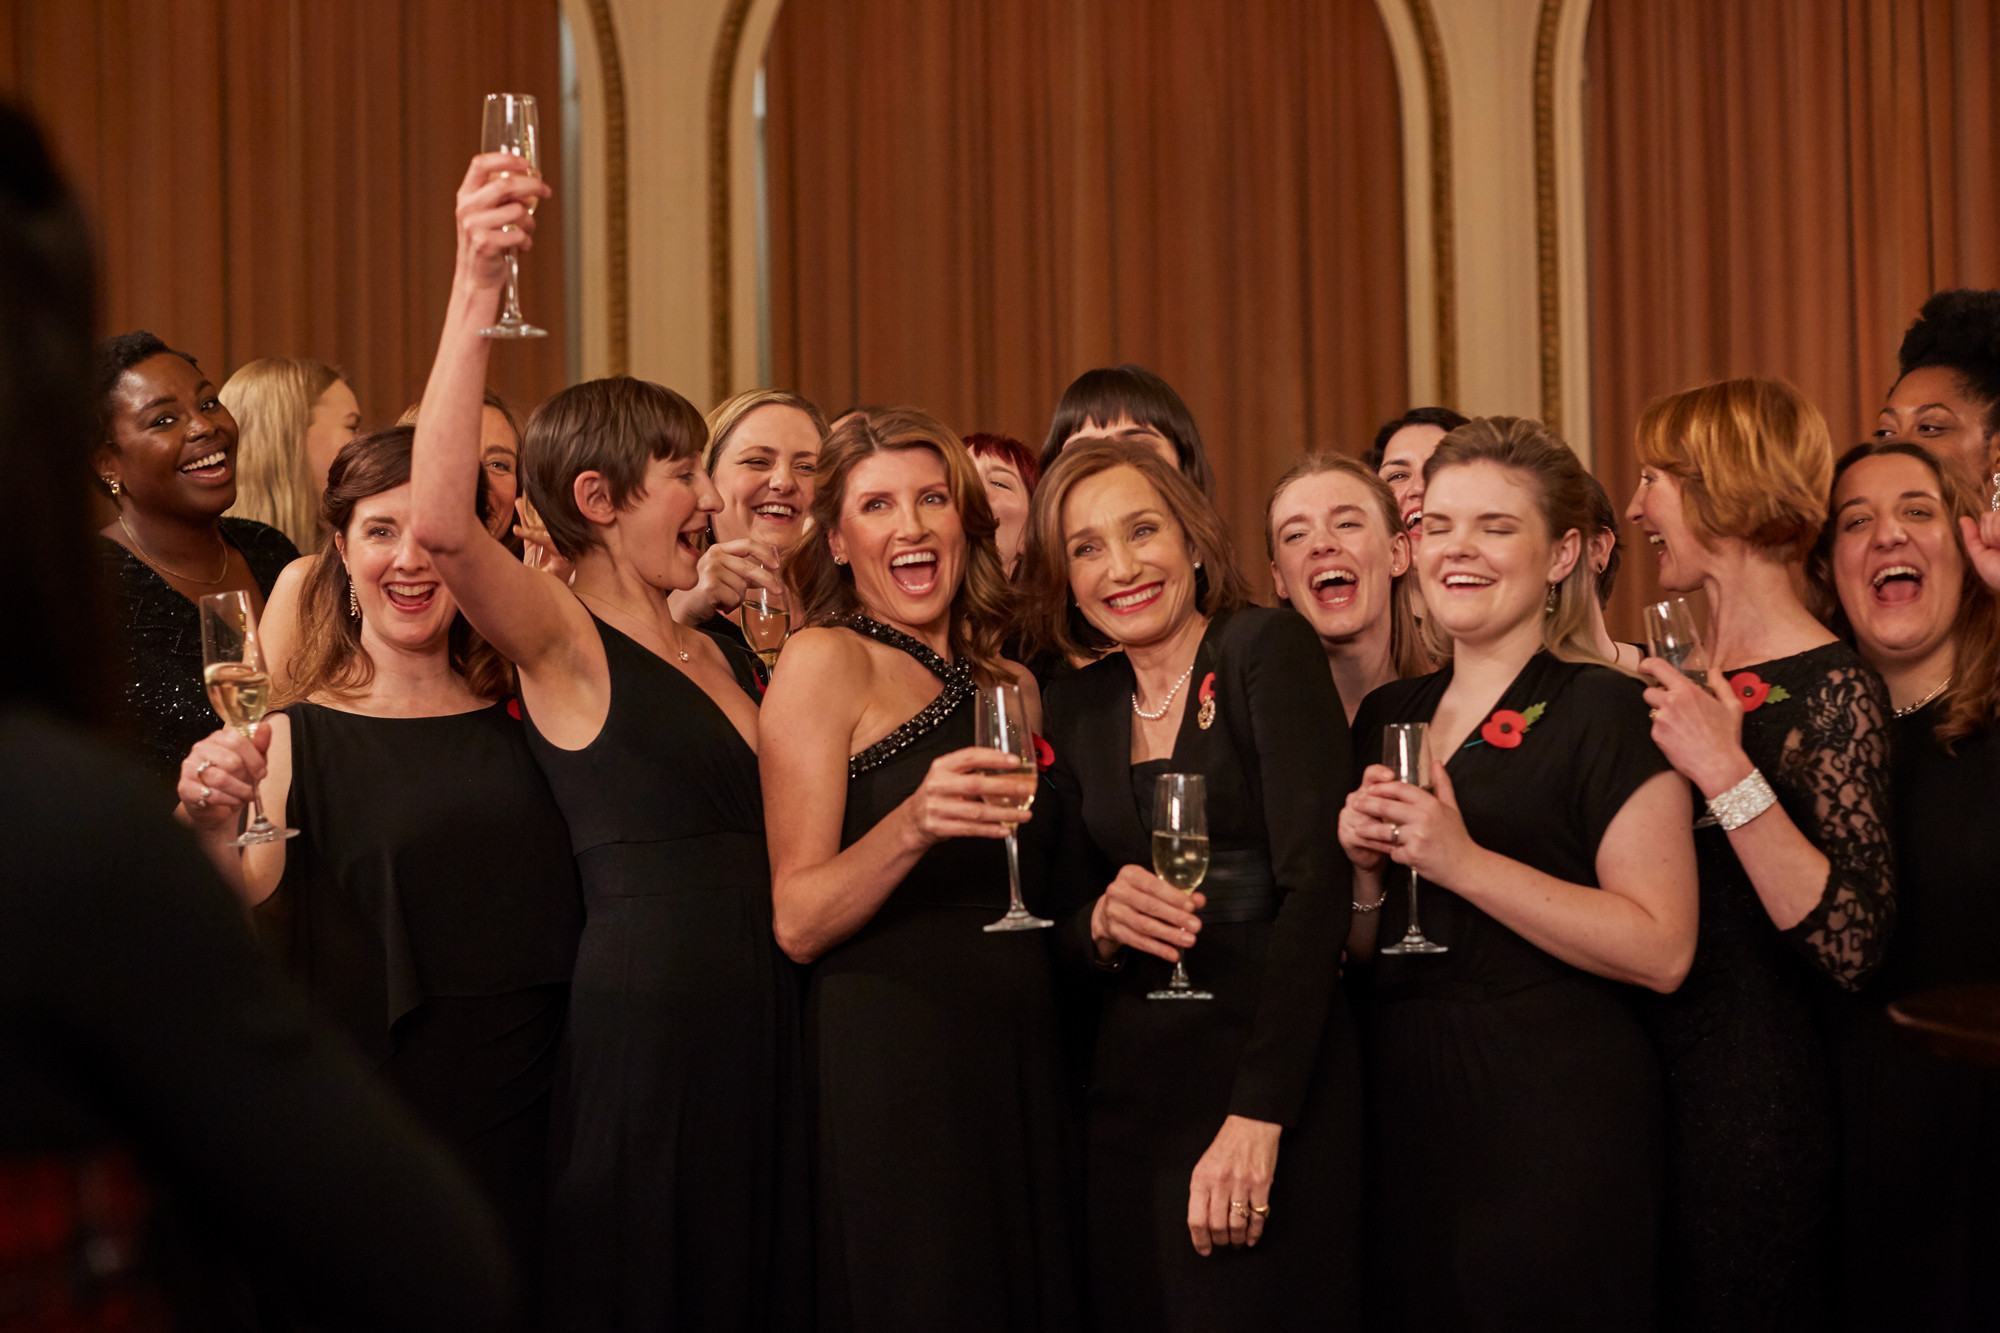 On song...Horgan and Scott Thomas in Military Wives